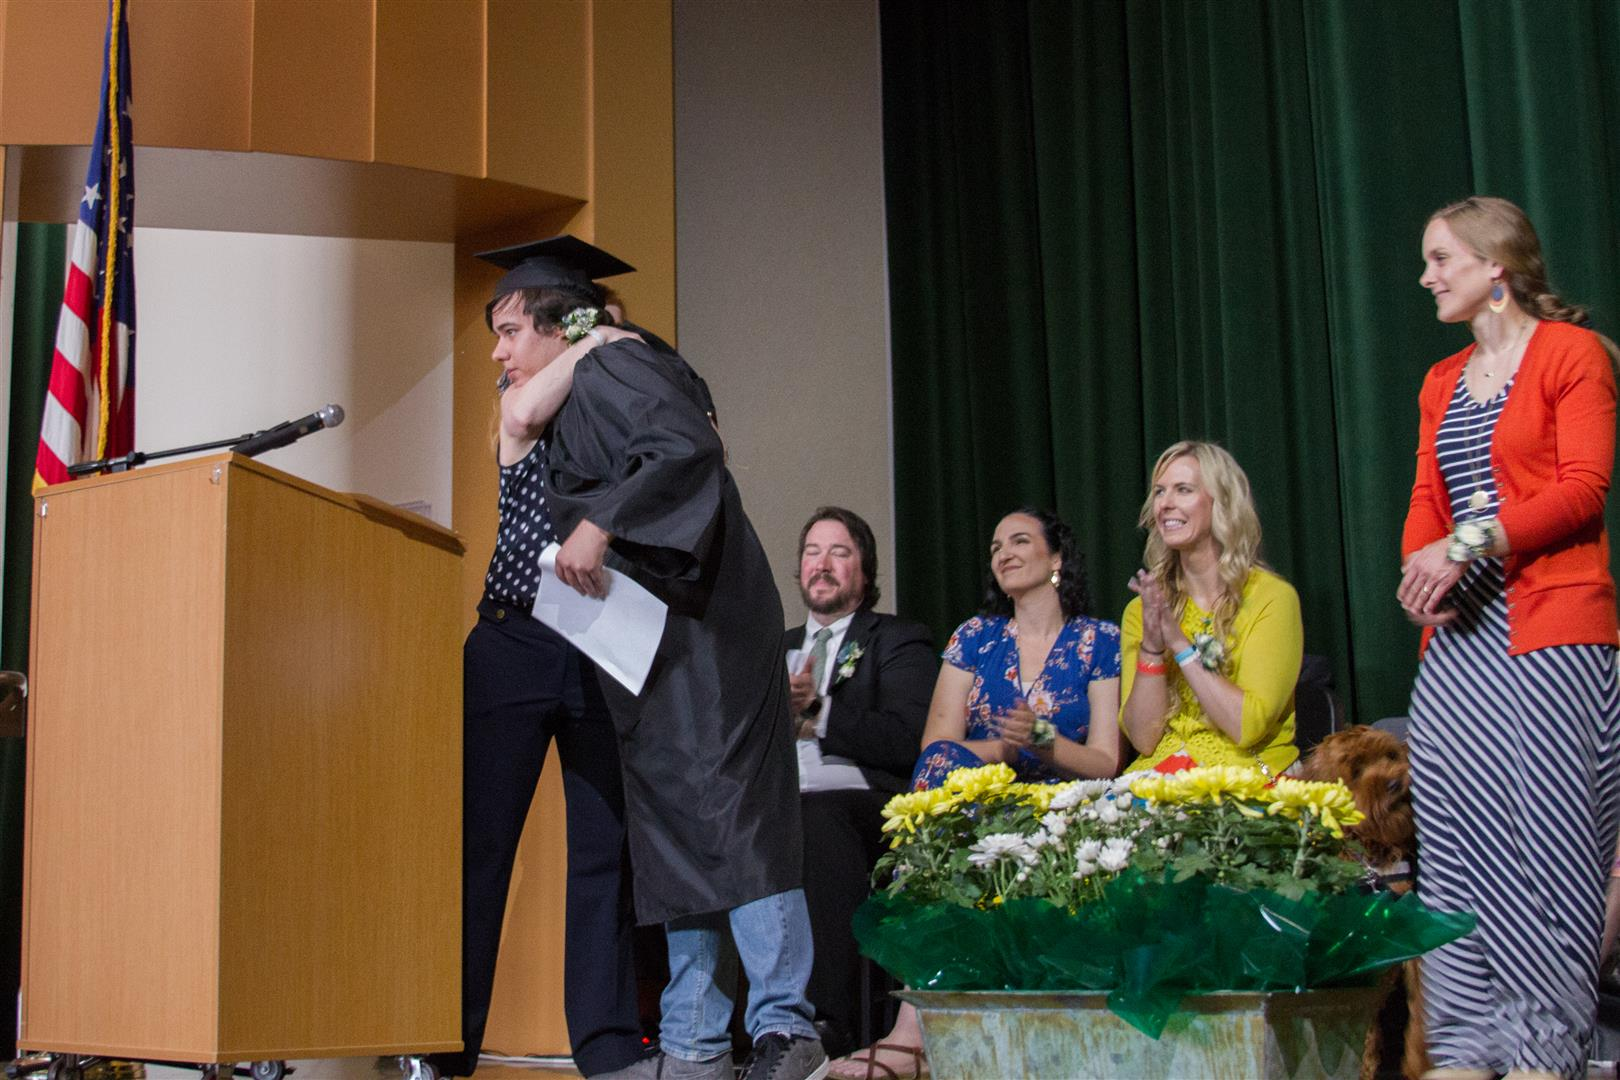 1560450000-team-high-class-of-2019-commencement-19__large_